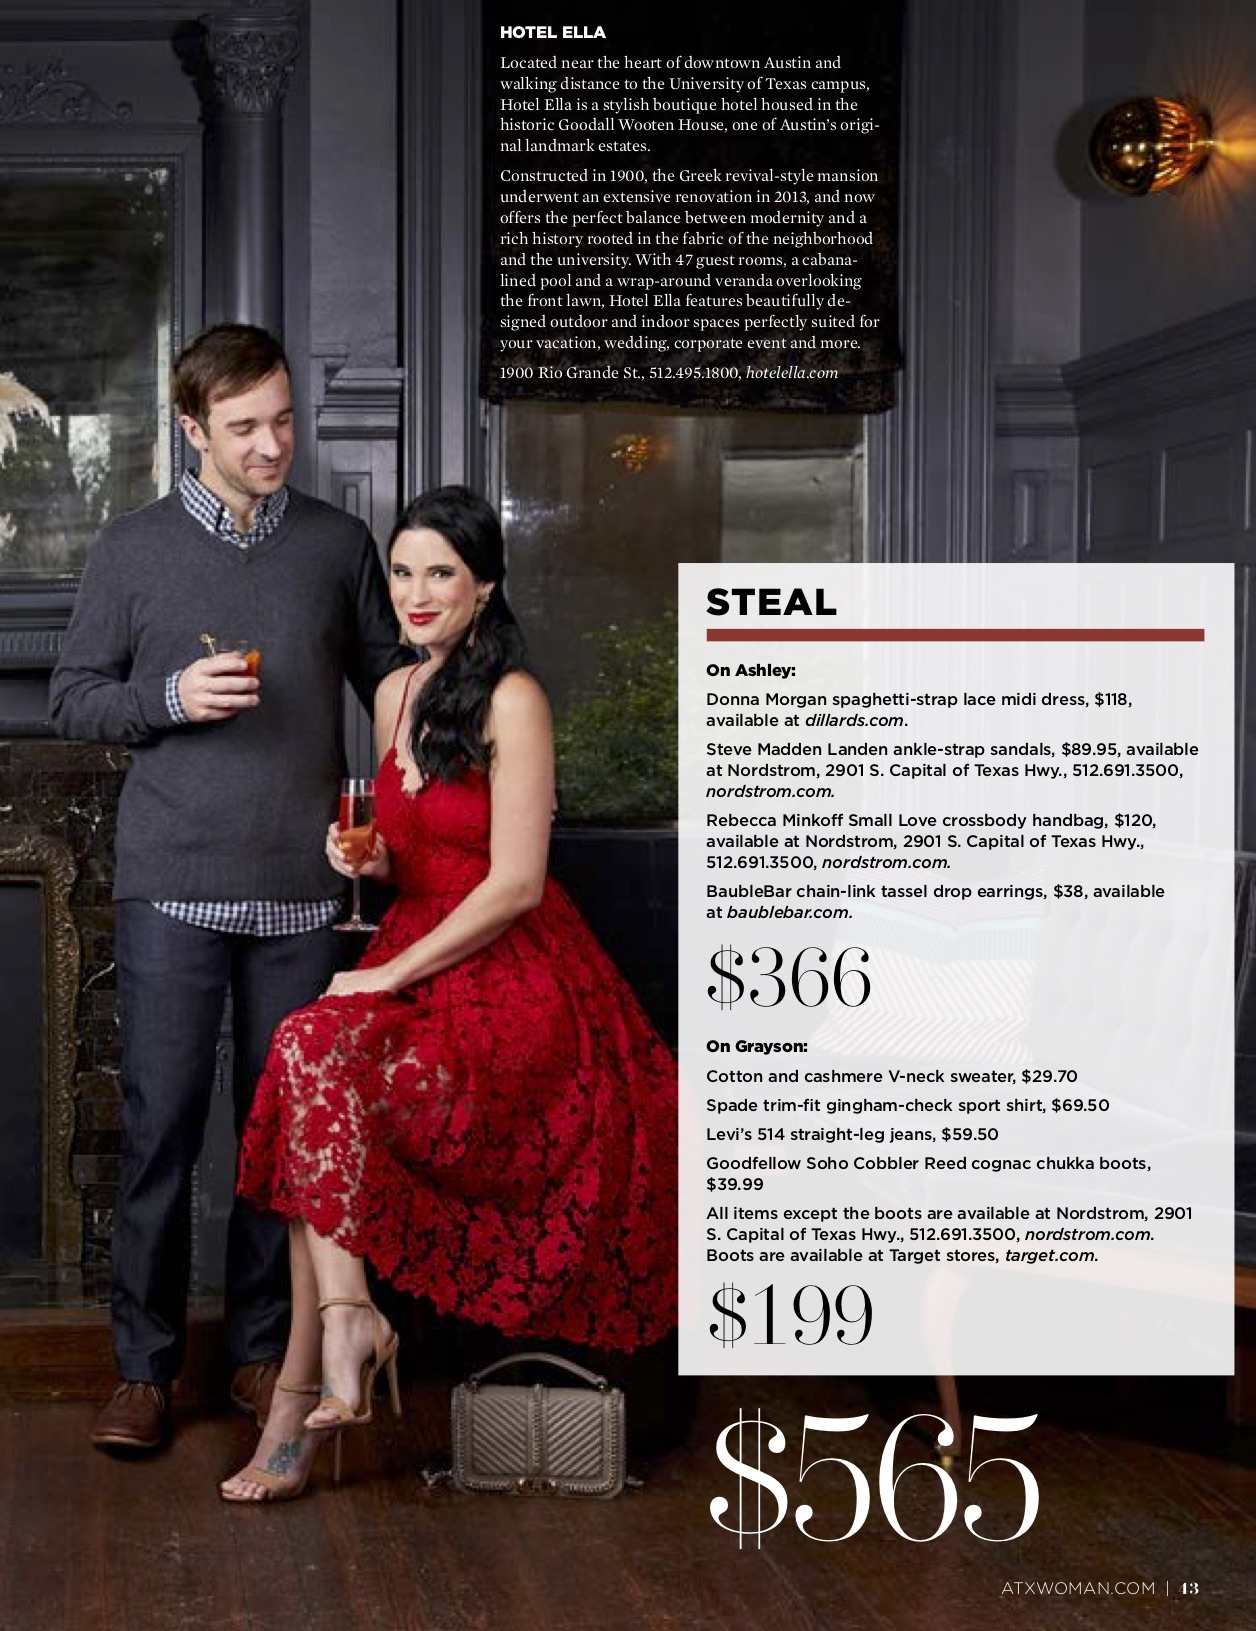 DTKAustin shares her recent Splurge or Steal Column about Date Night Ideas for him and her in Austin Woman Magazine just in time for Valentine's Day! || Dressed to Kill #valentineoutfits #datenightoutfit #reddress - Valentine's Date Night Outfits for Him & Her by popular Austin fashion blogger Dressed to Kill